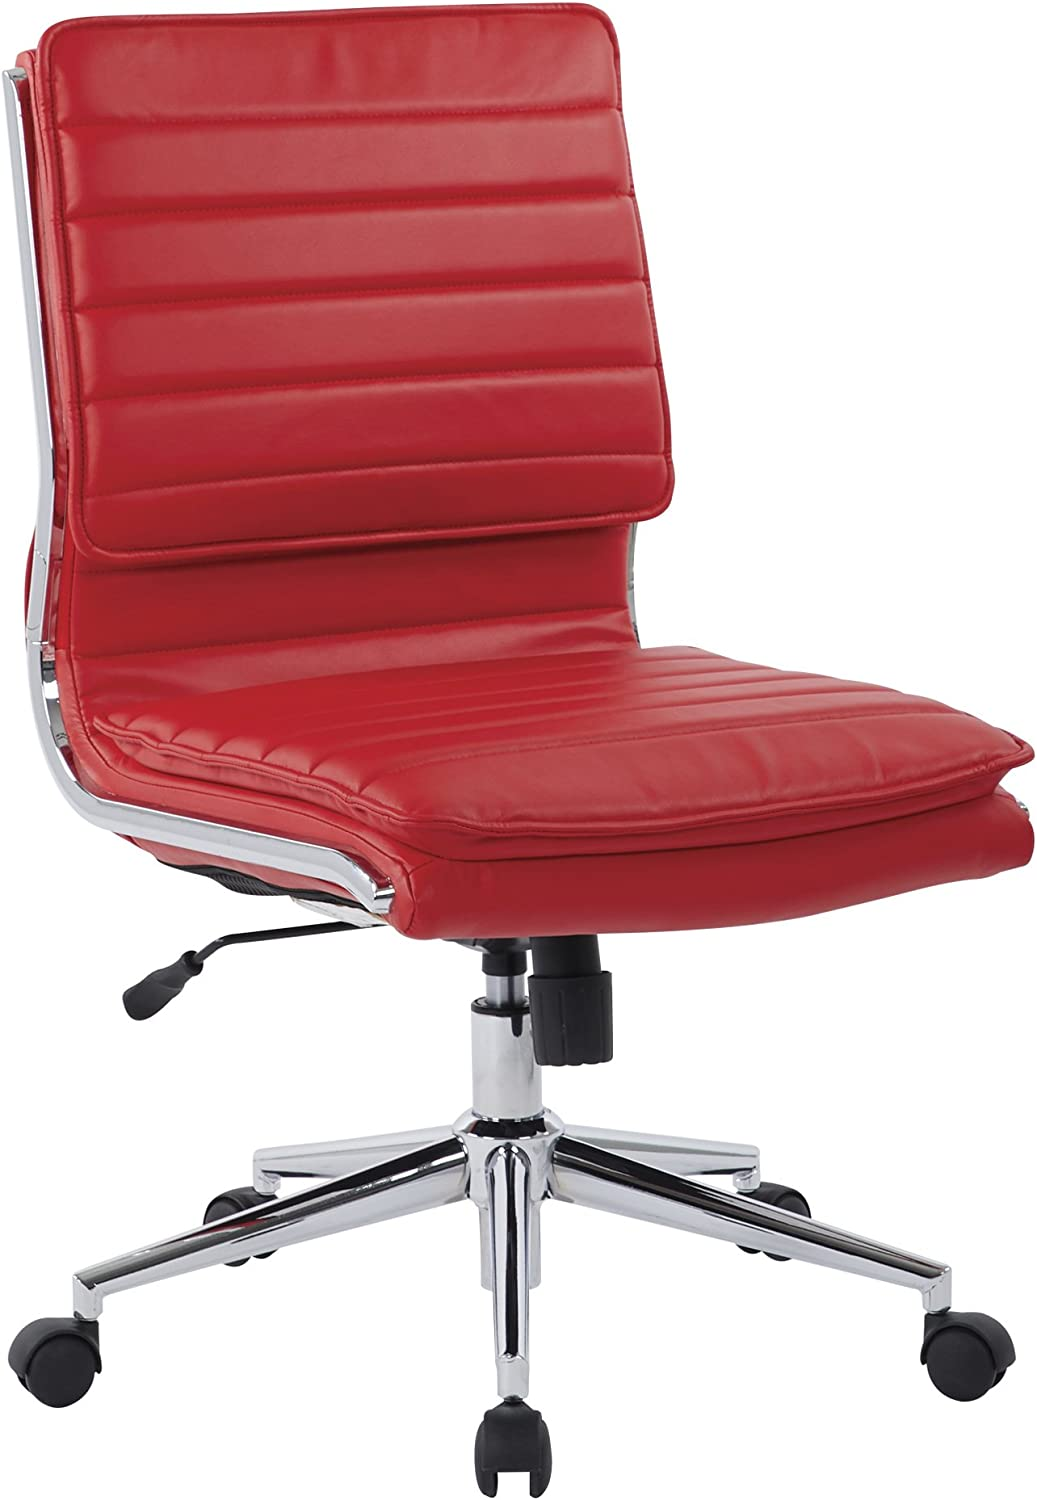 Office Star Faux Leather Armless Mid Back Managers Chair with Chrome Base, Red